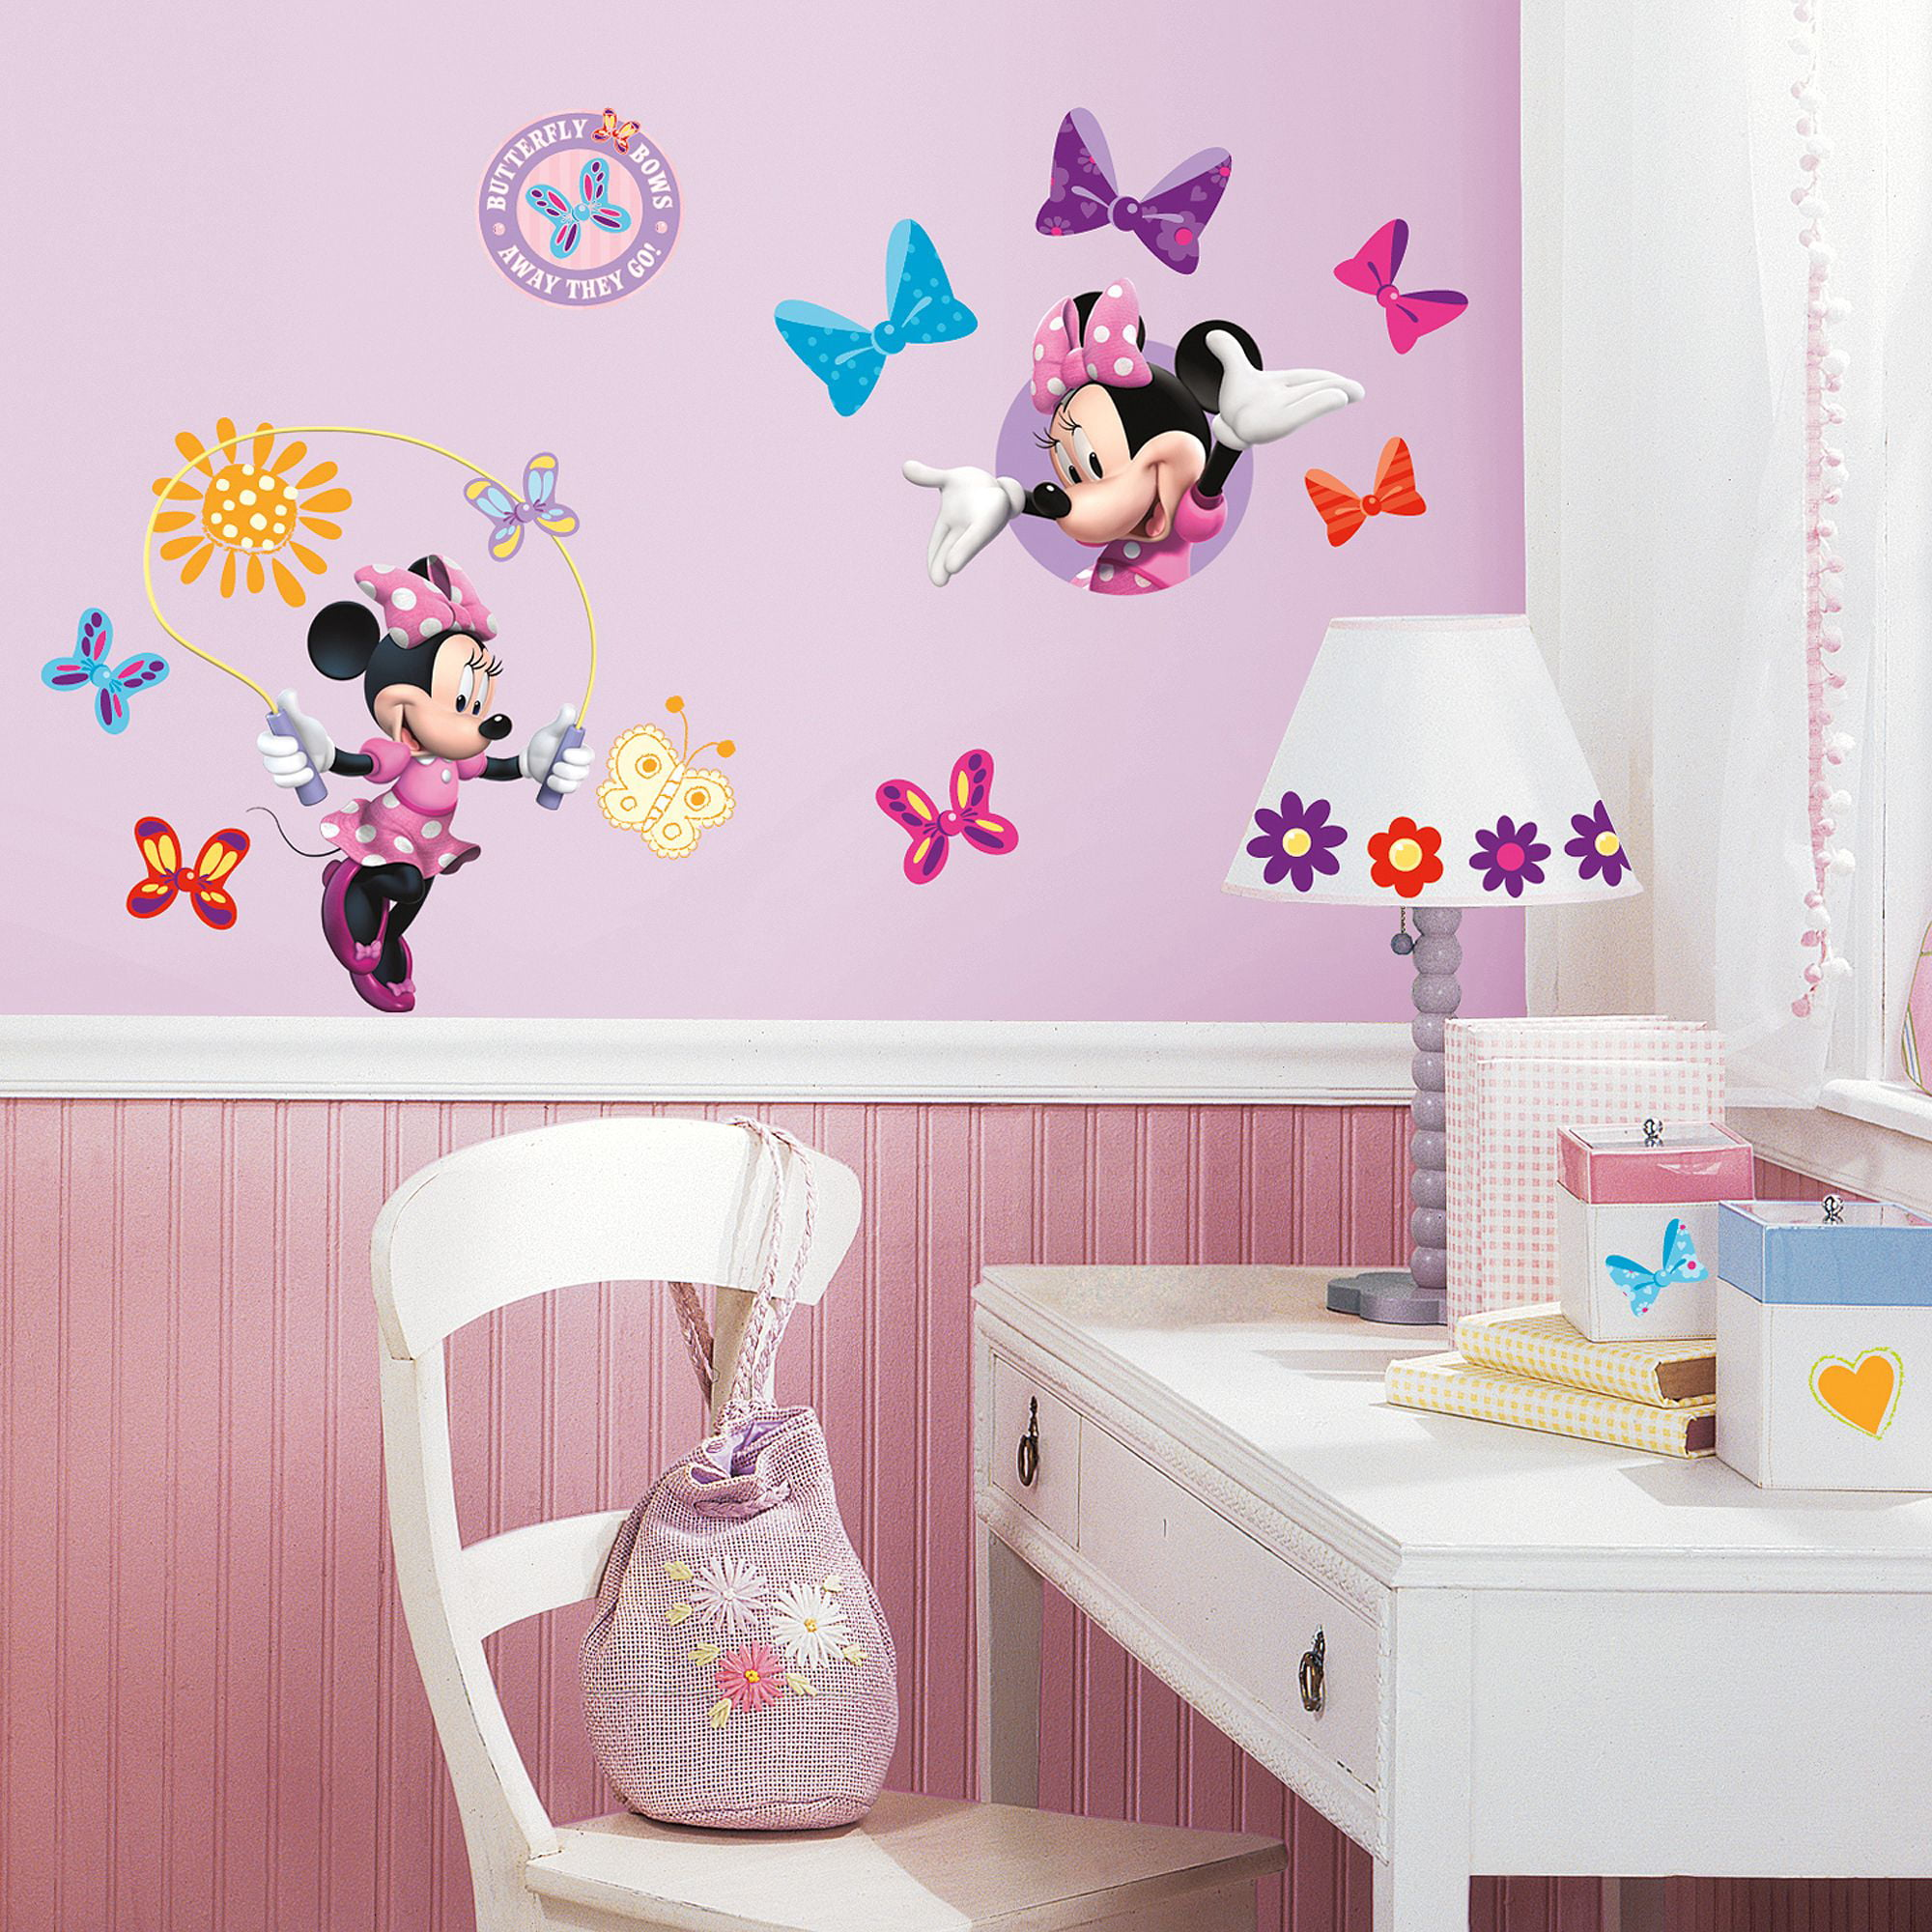 RoomMates Mickey and Friends Minnie Bow-Tique Peel-and-Stick Wall Decals -  Walmart.com